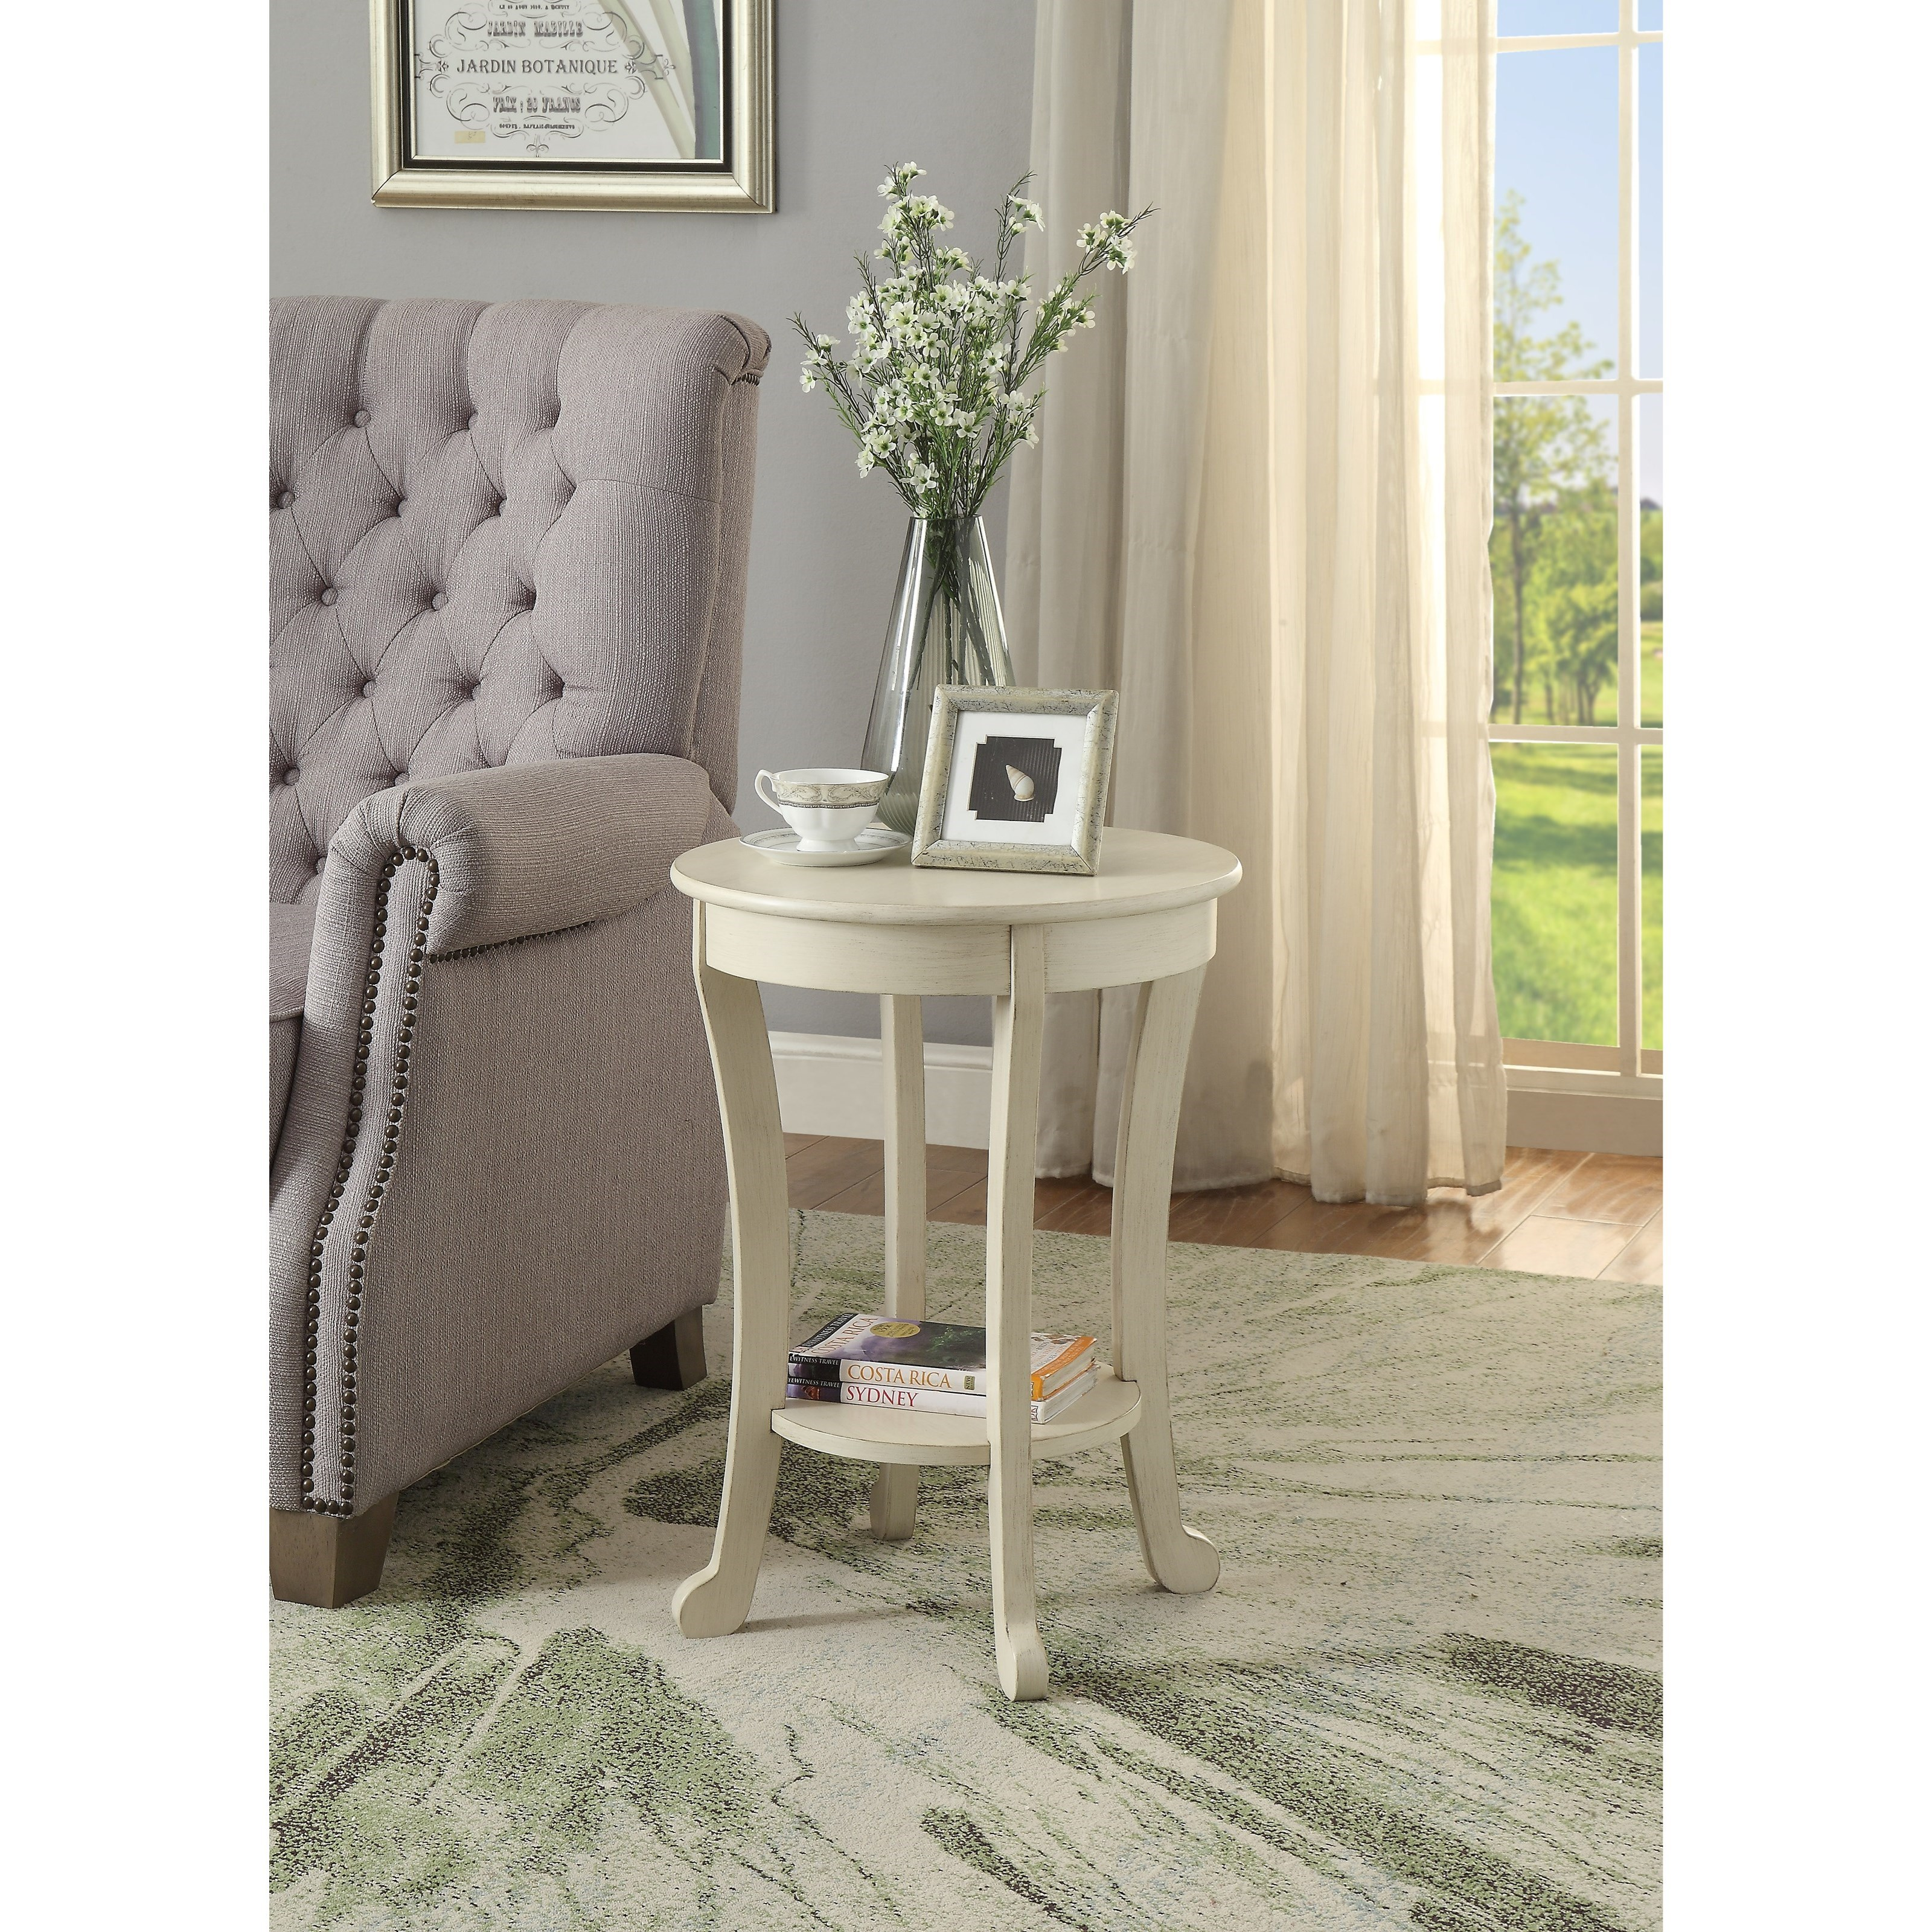 Alysa III End Table by Acme Furniture at Carolina Direct